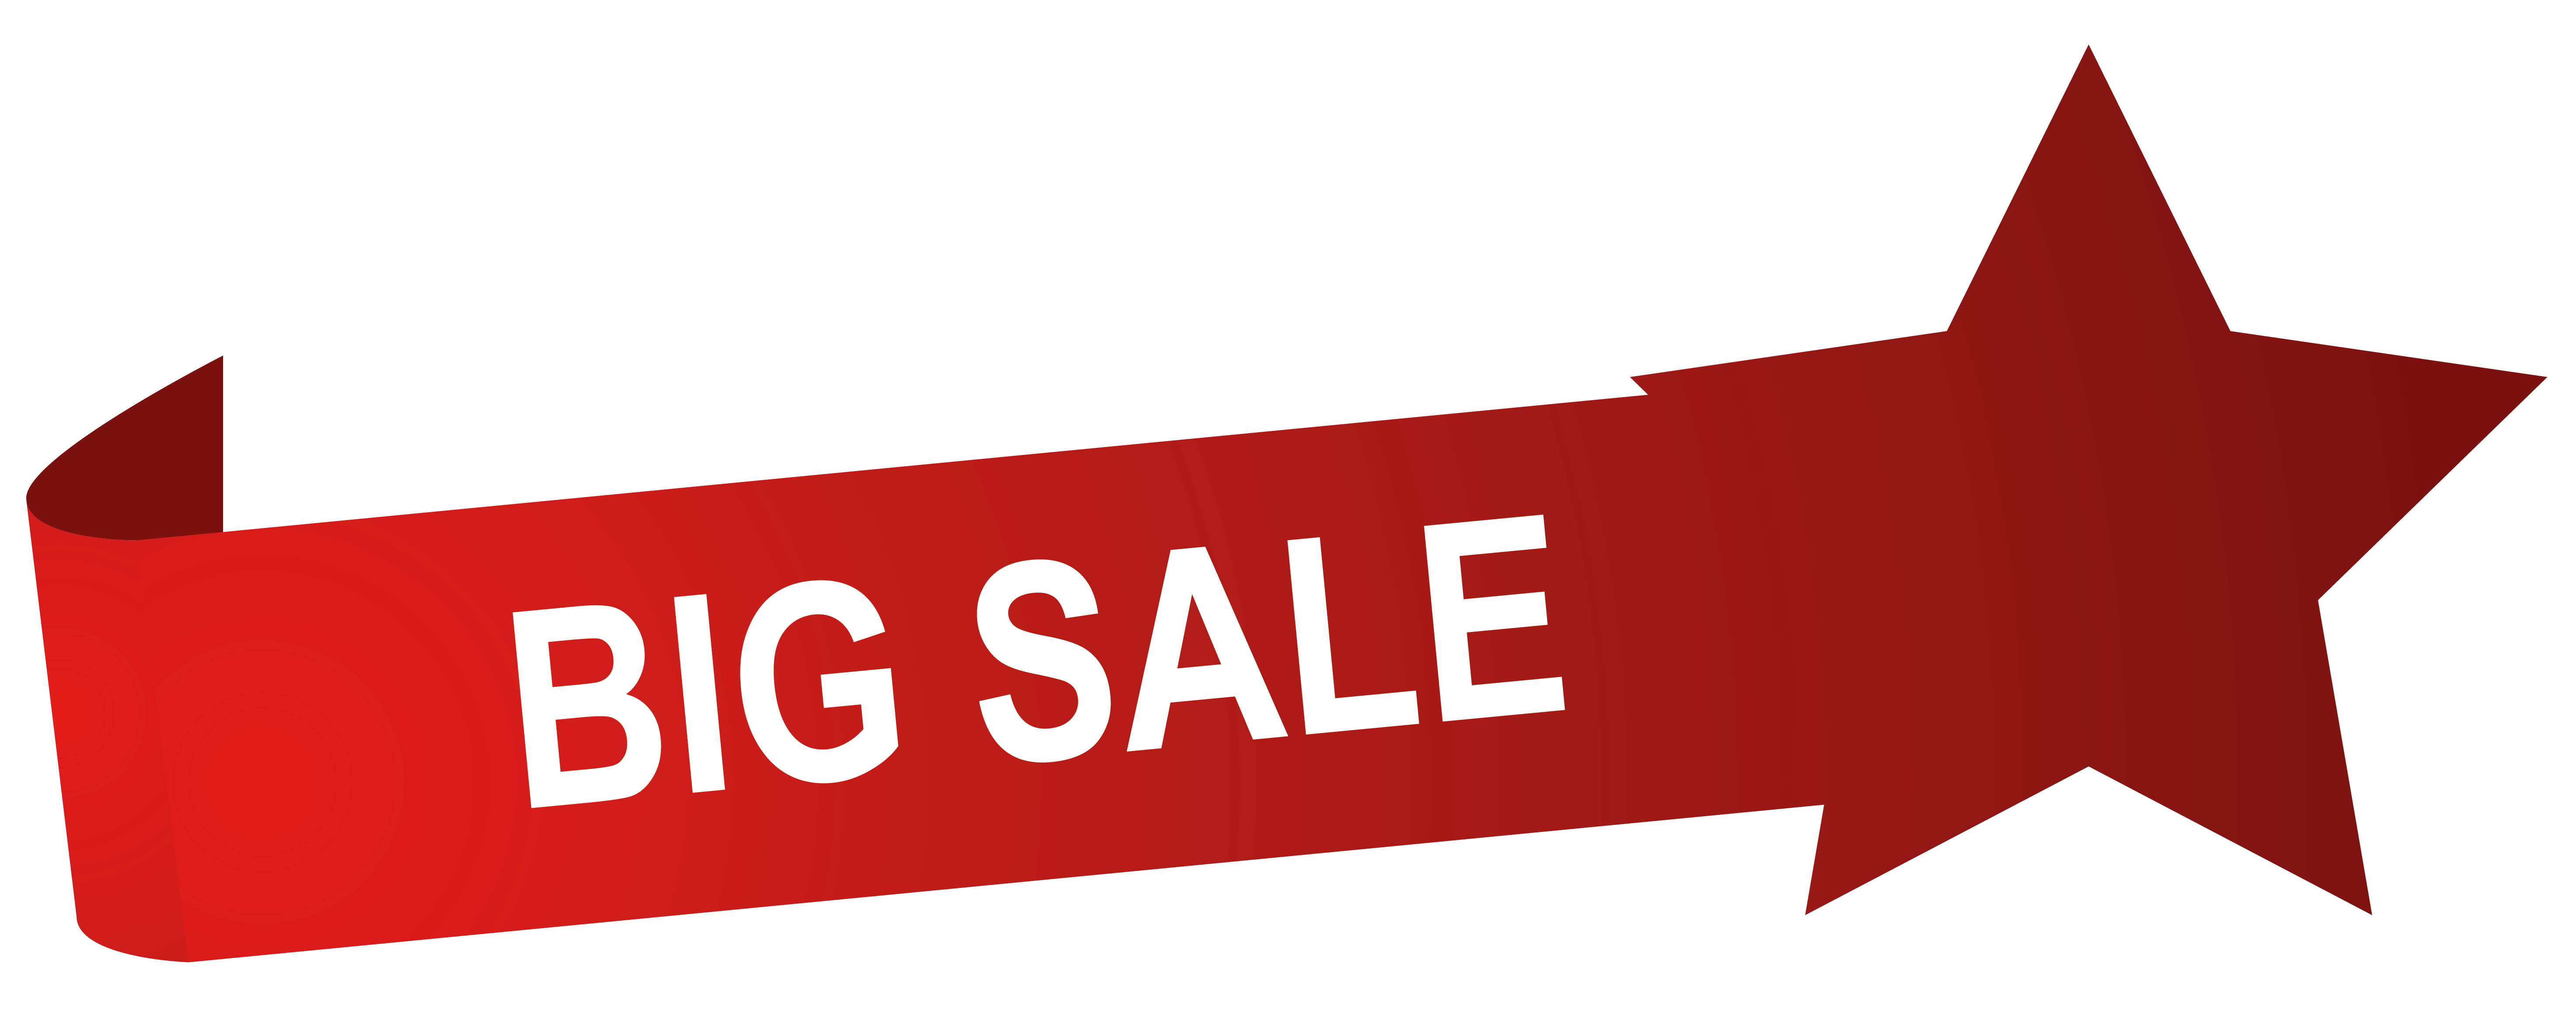 Free label png. Big sale clipart picture